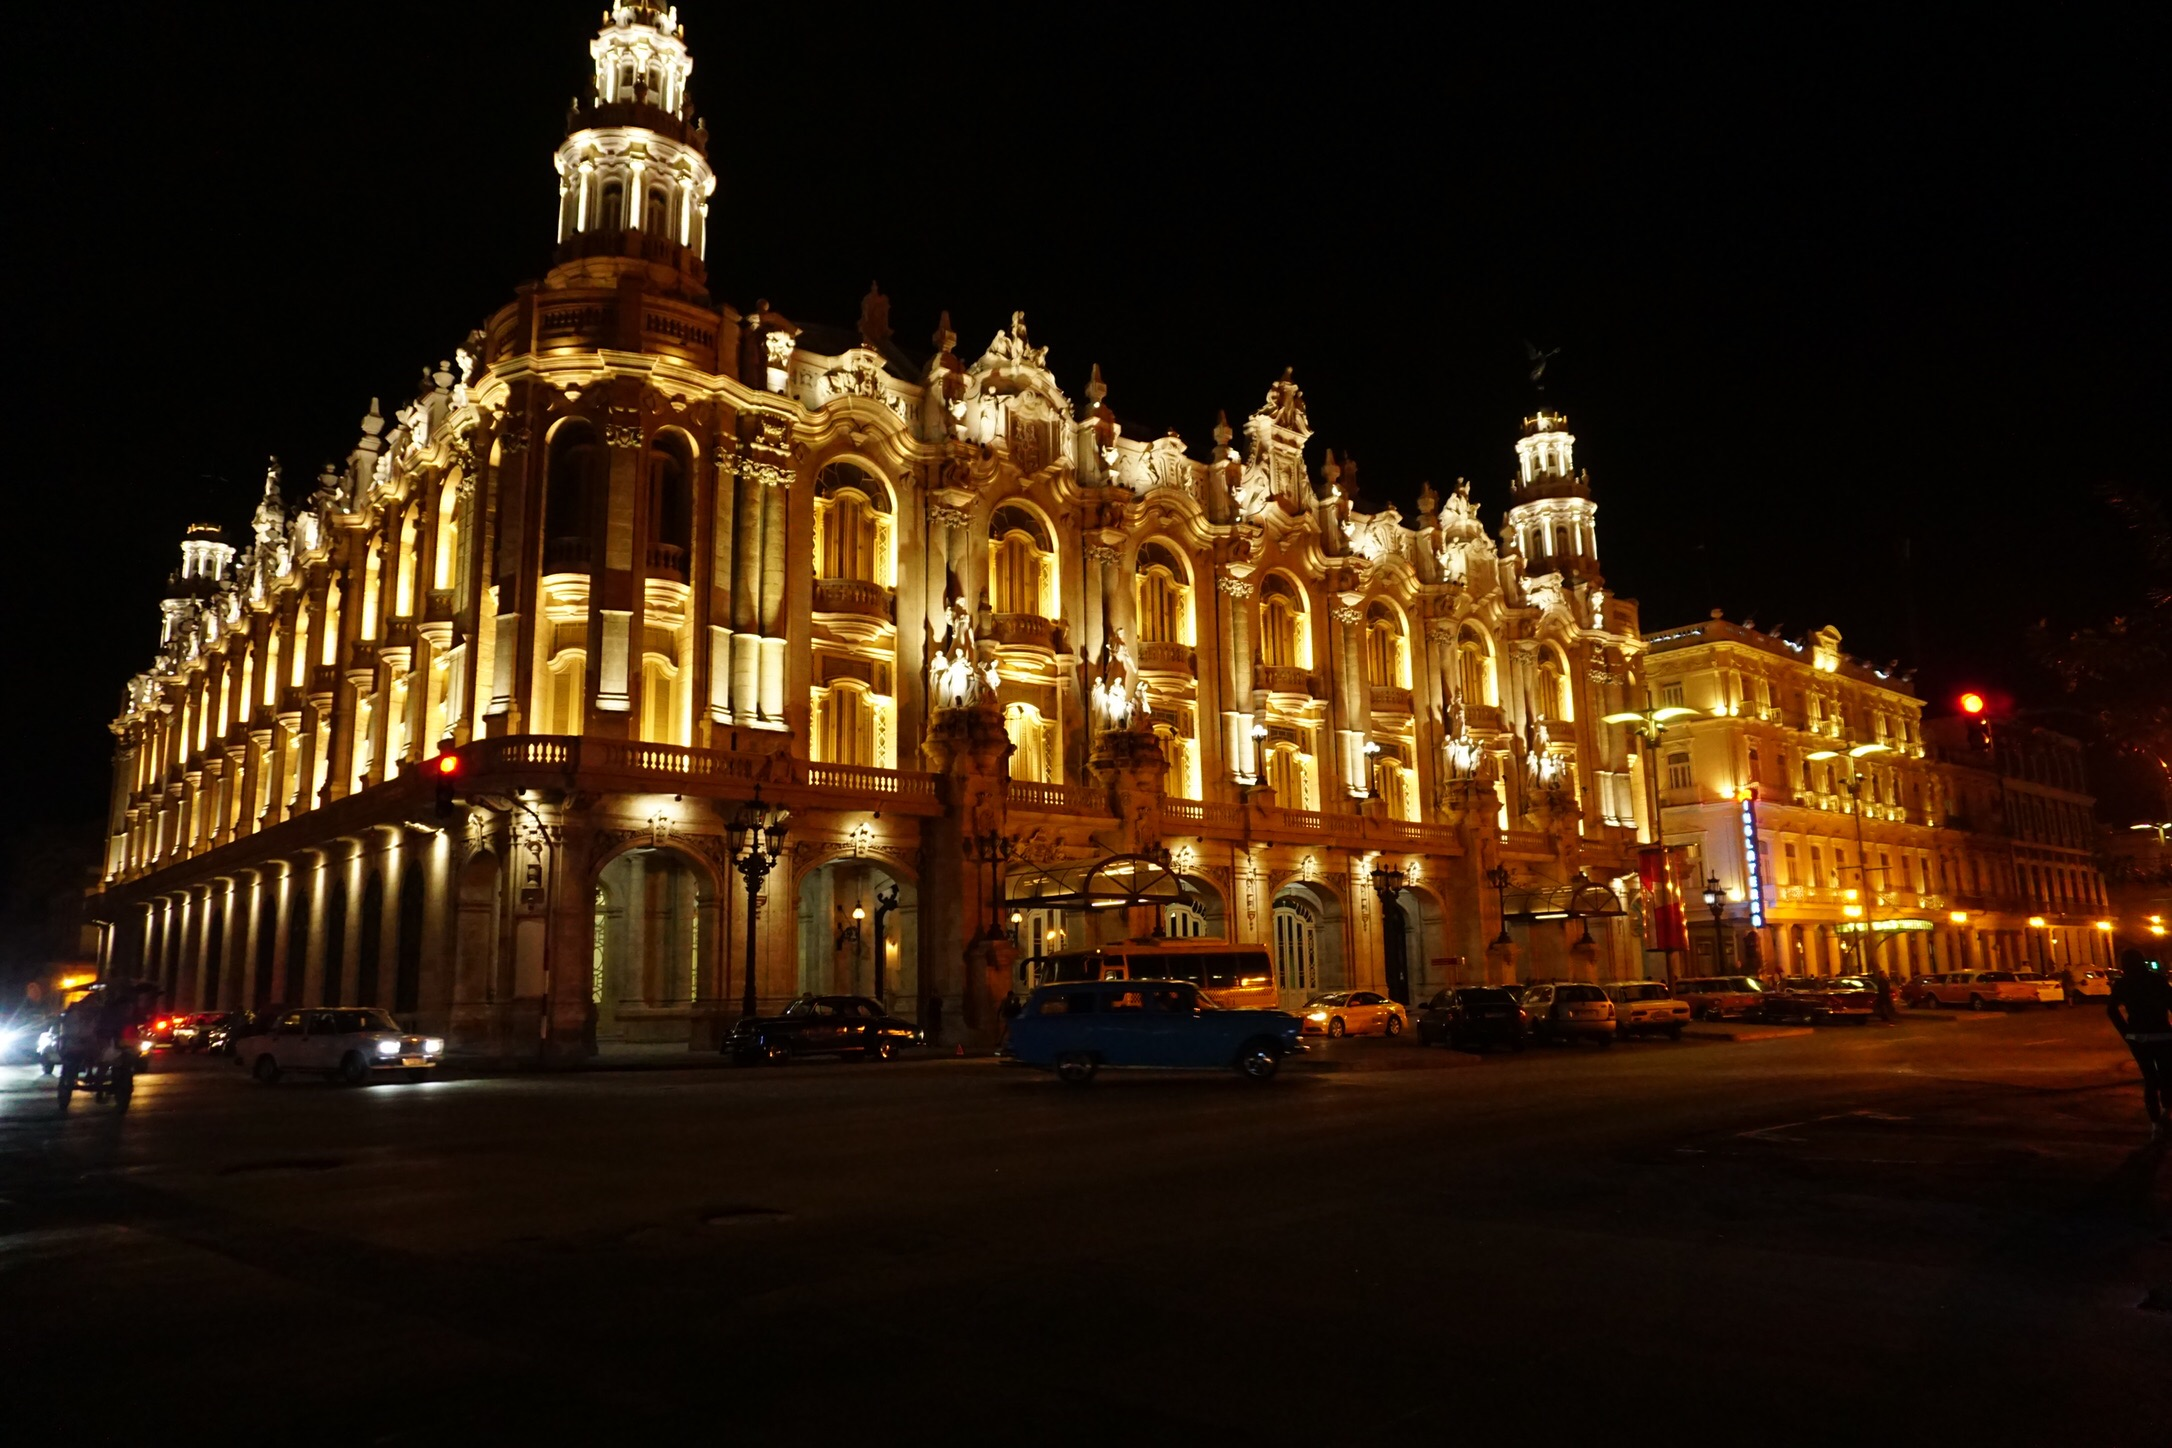 Gran Teatro de la Habana by night before hurricane Irma